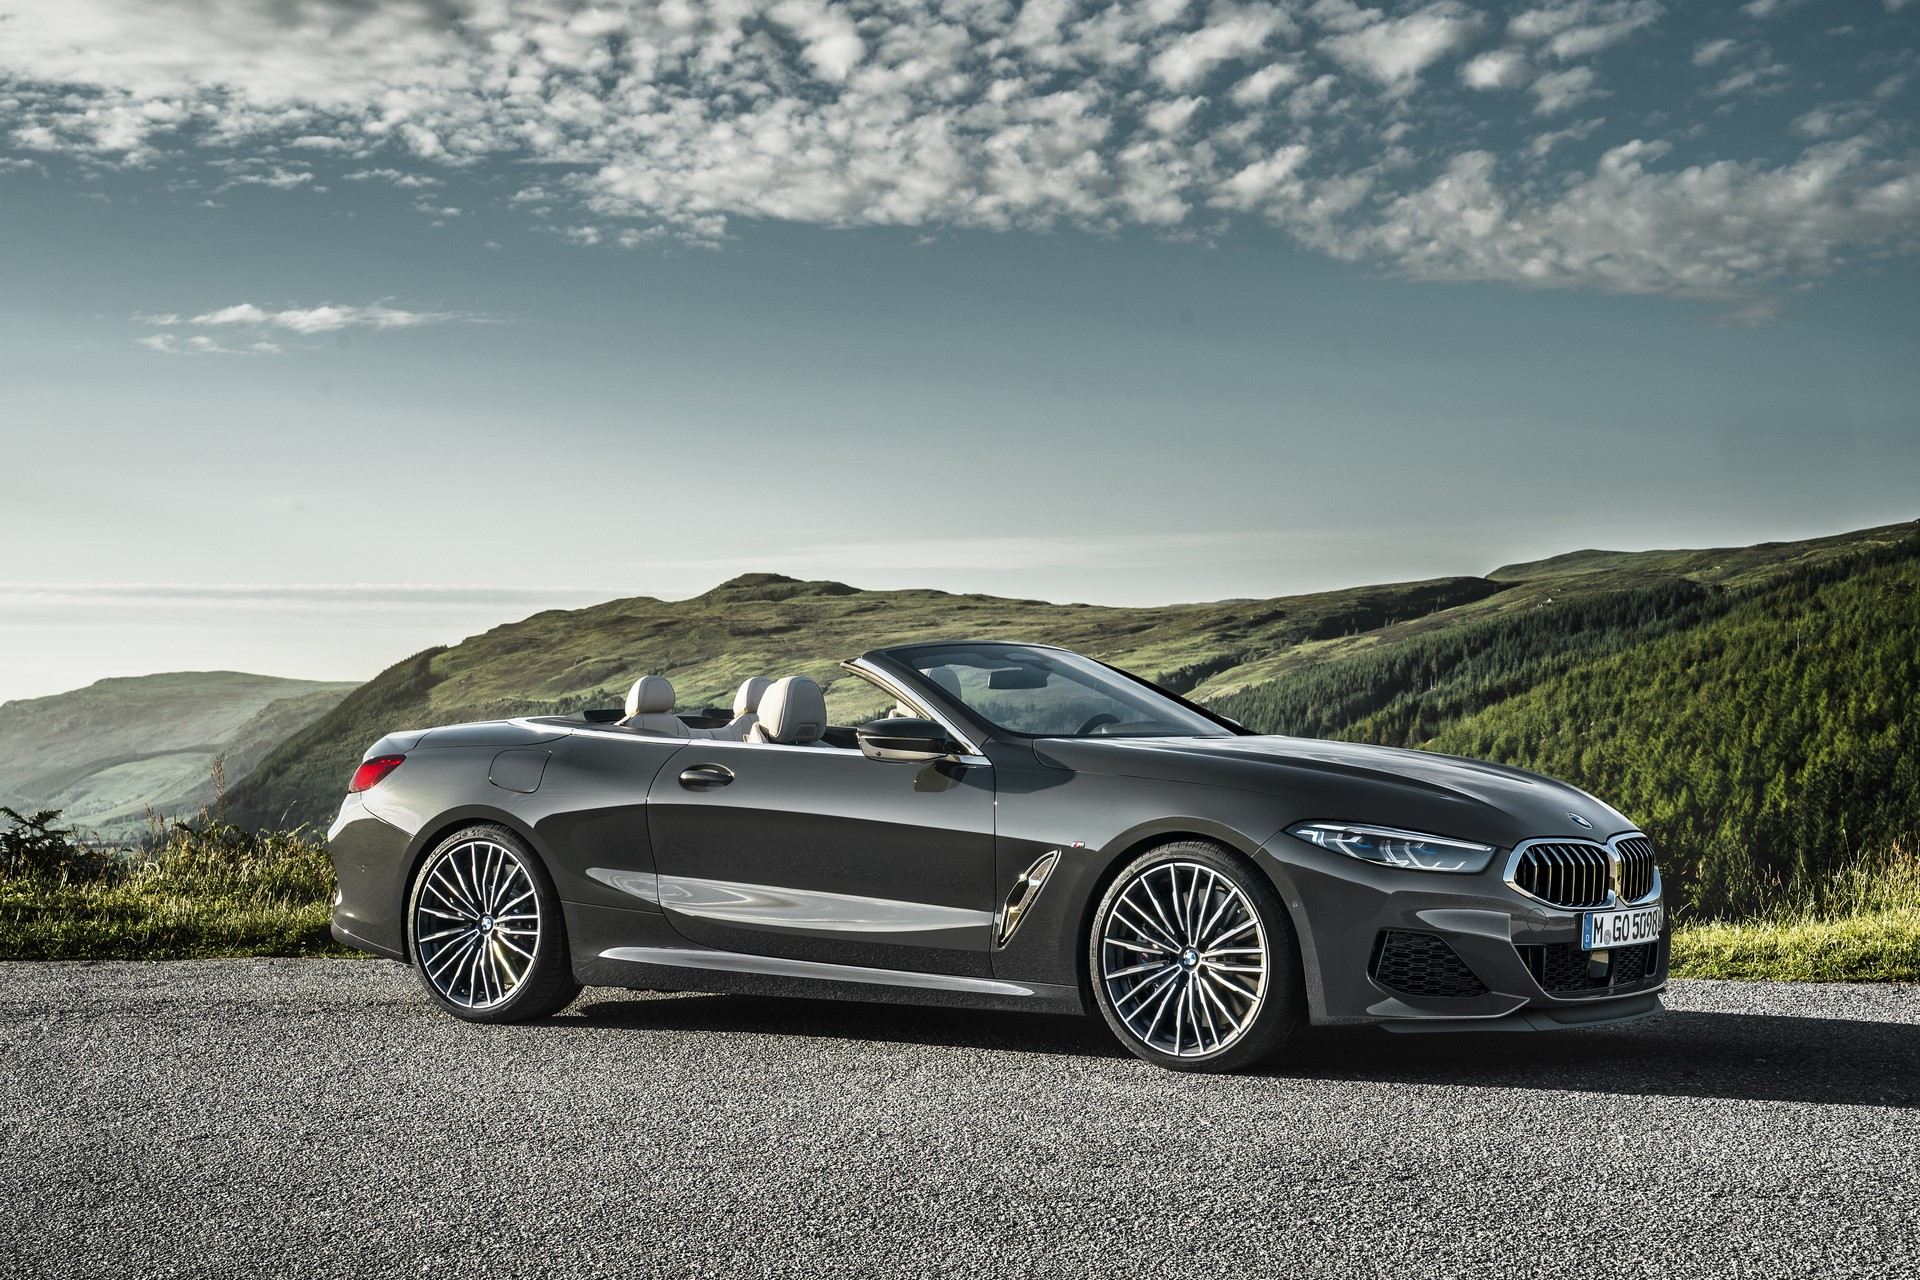 BMW 8 Series Convertible 2019 (33)